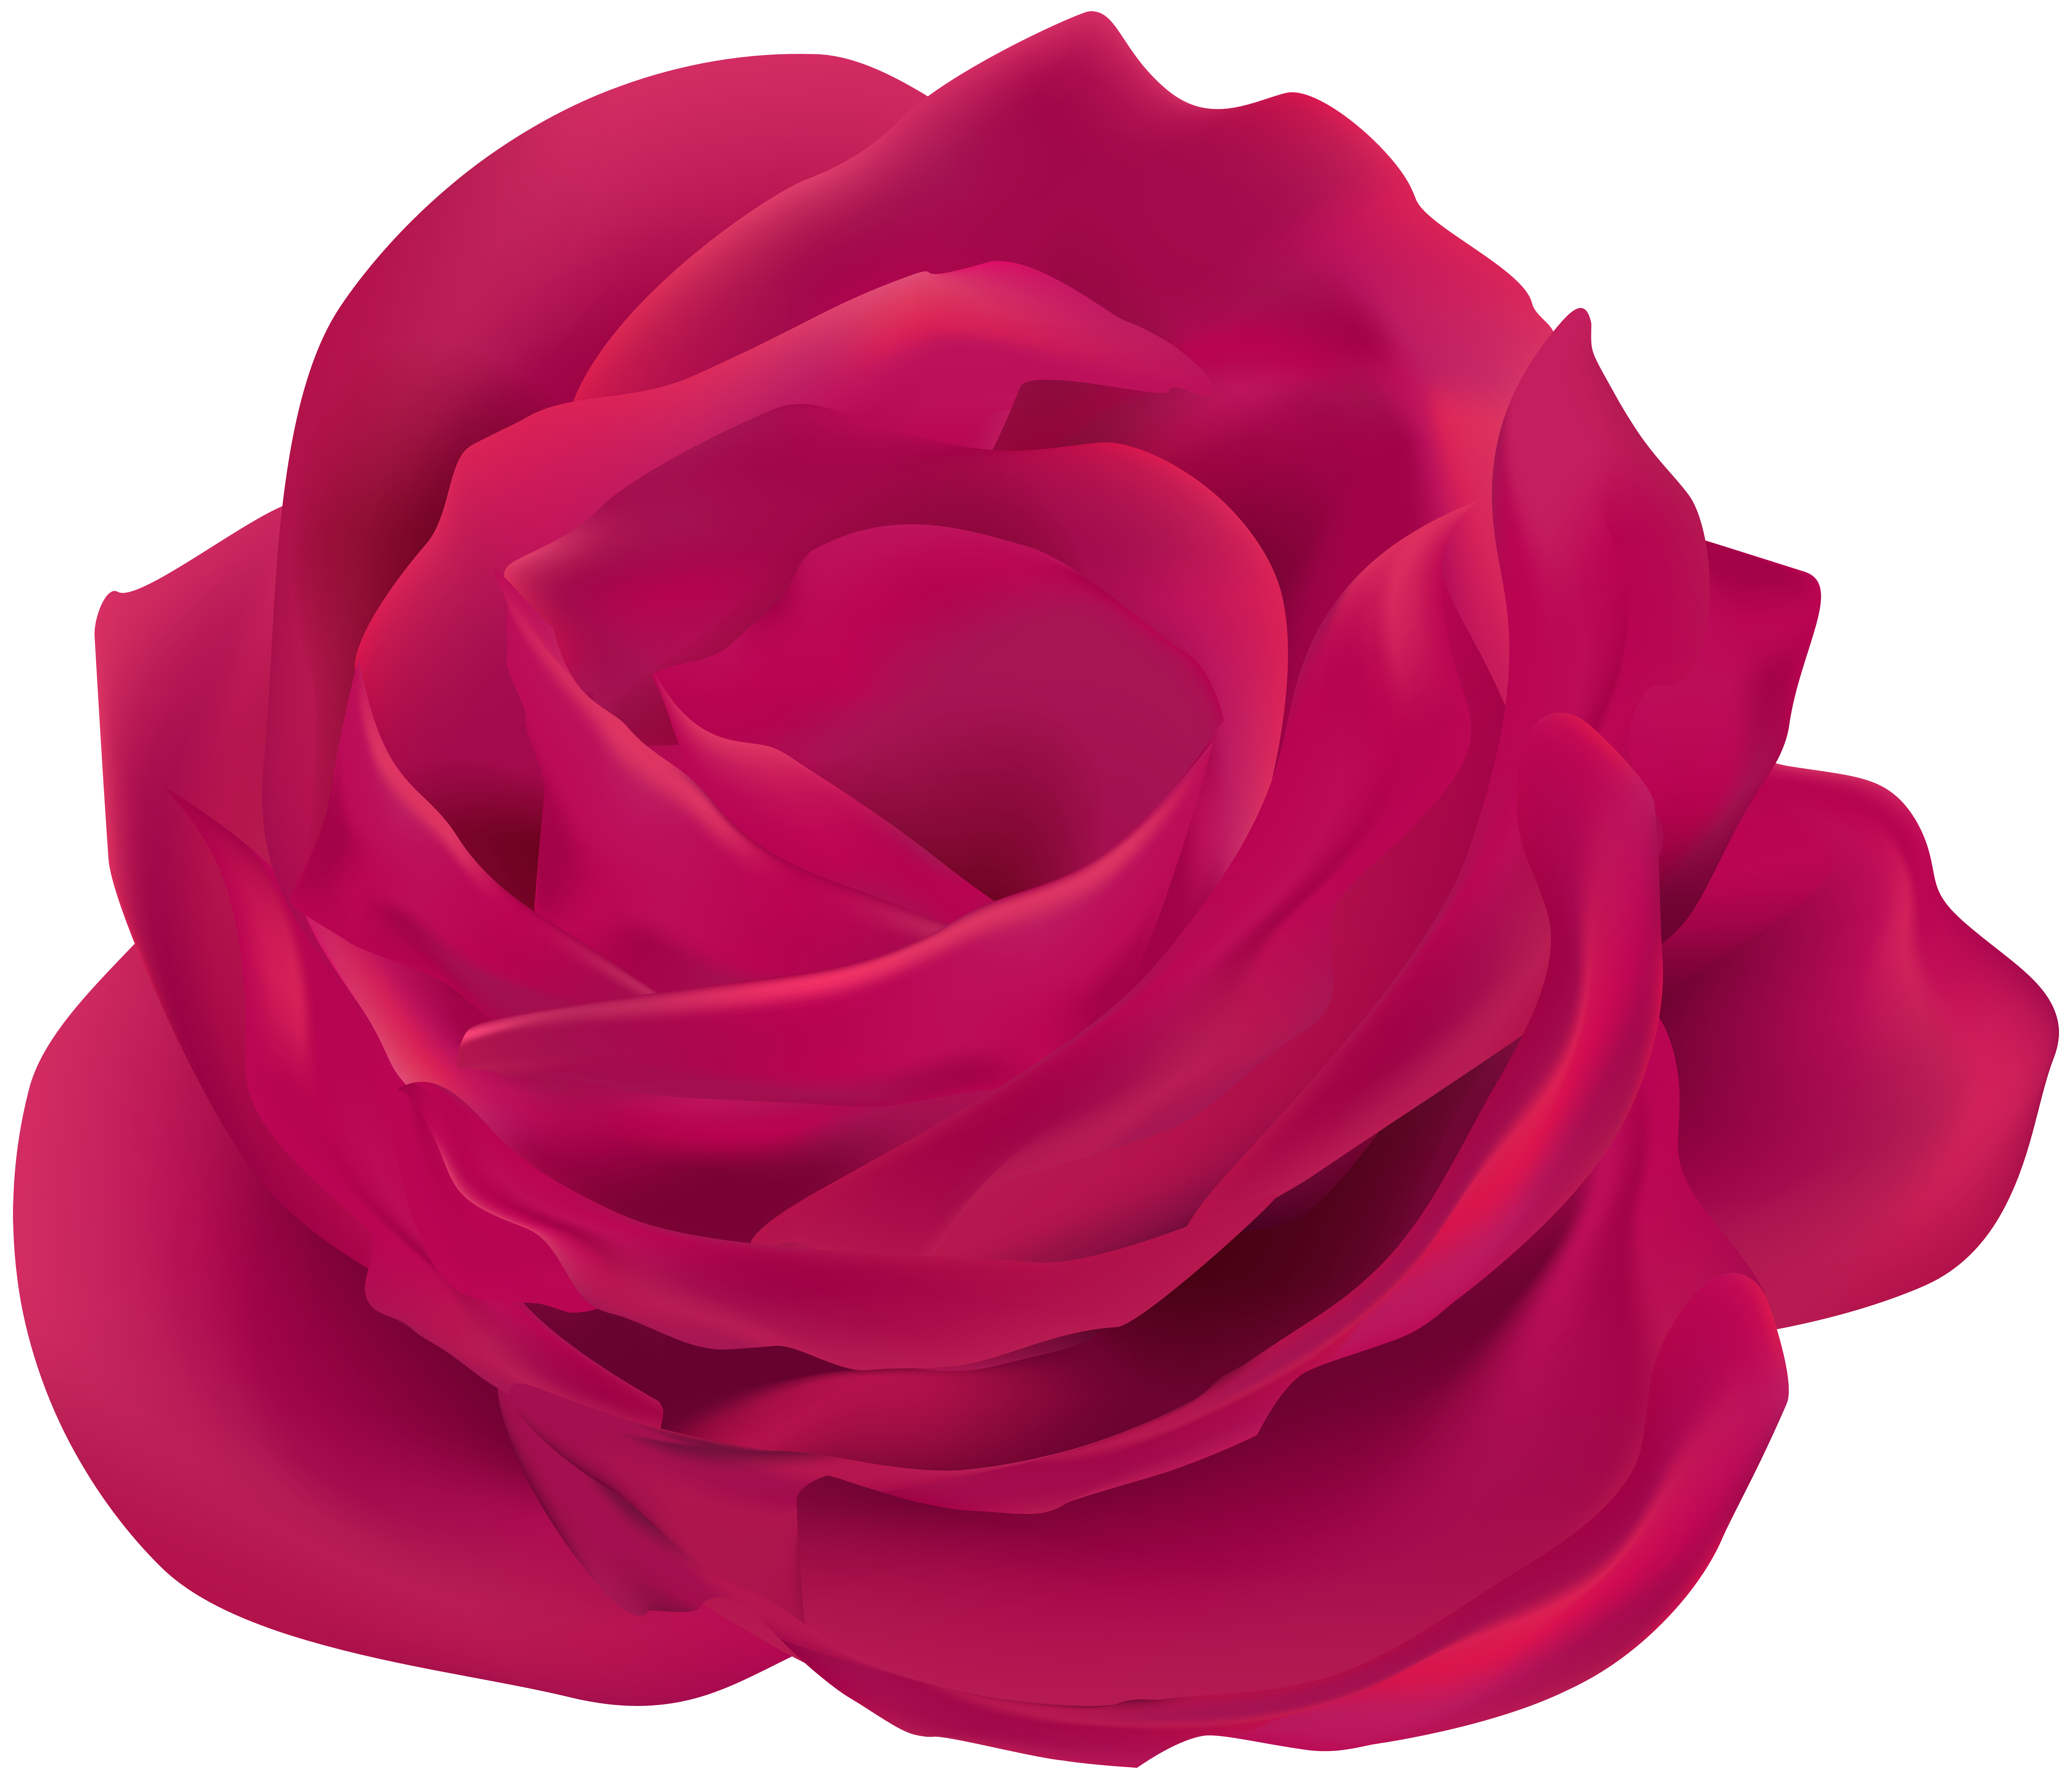 Rose flower clipart png freeuse library Pink Rose Flower Clip Art Image | Gallery Yopriceville - High ... png freeuse library